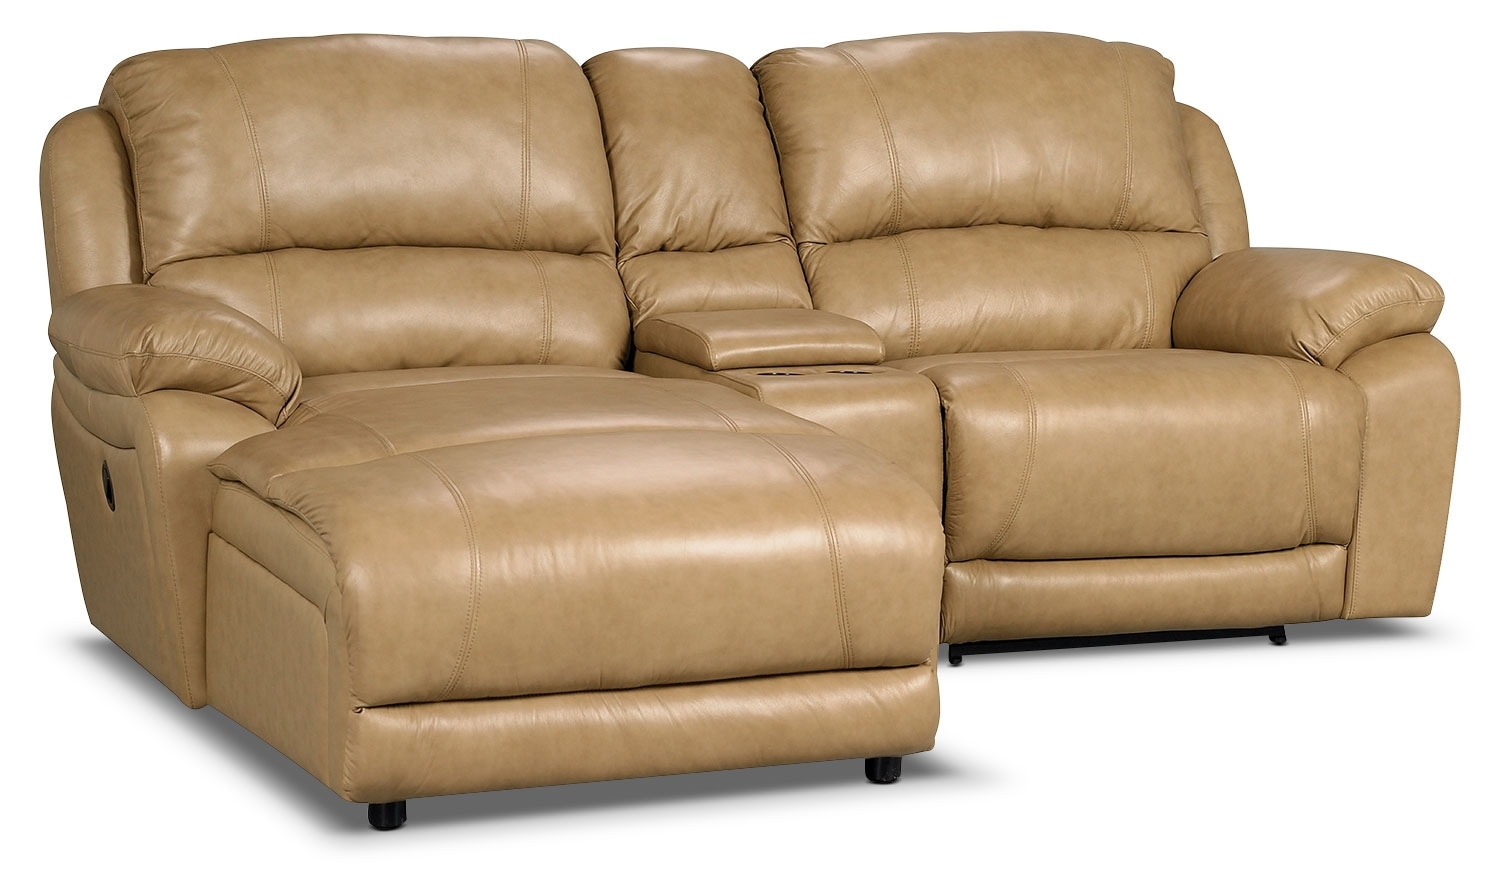 Home Decor Clearance Sale Marco Genuine Leather 3 Piece Sectional With Chaise Power